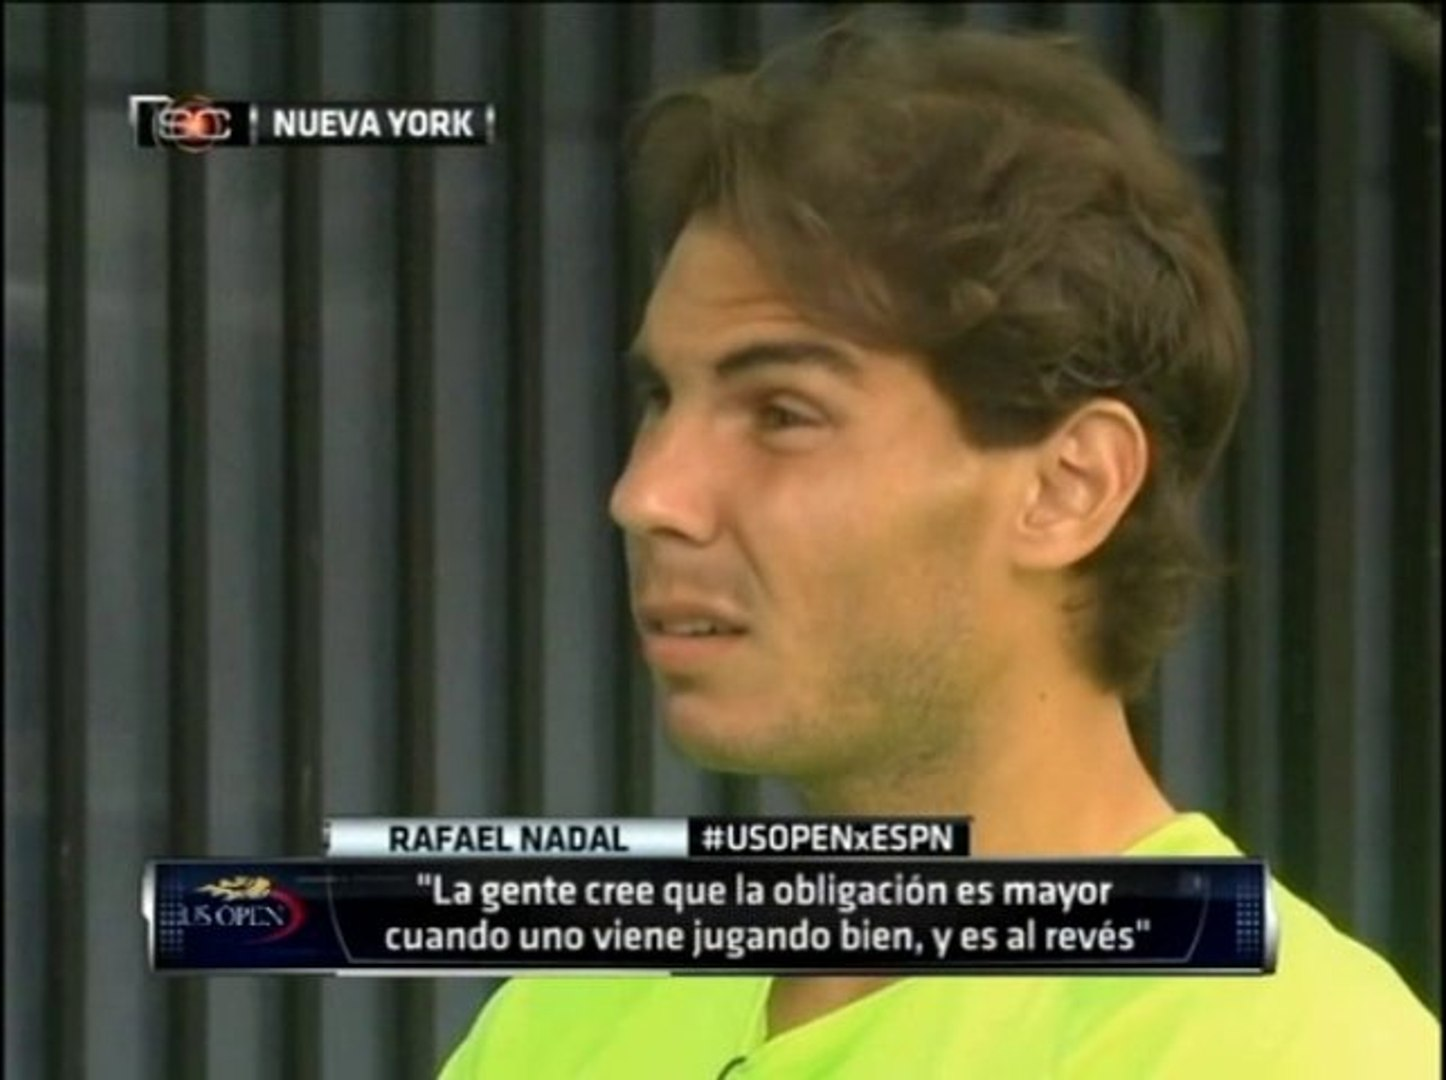 Rafael Nadal S Interview For Espn Deportes In Nyc In Spanish Video Dailymotion